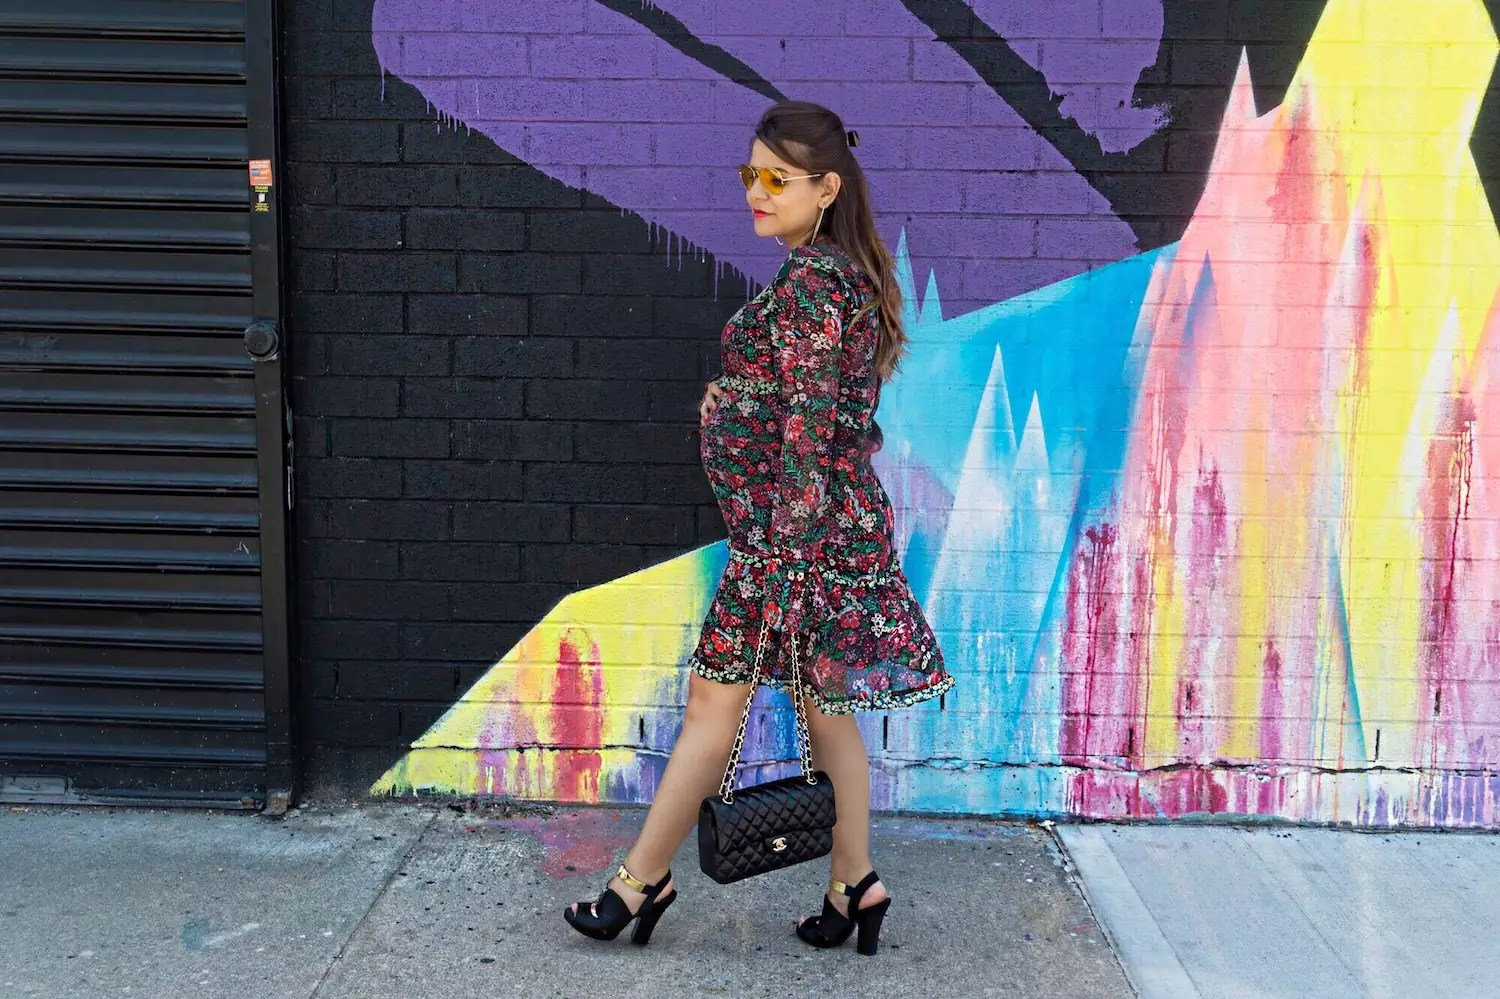 oday I decided to write about maternity clothes that don't look like maternity clothes.